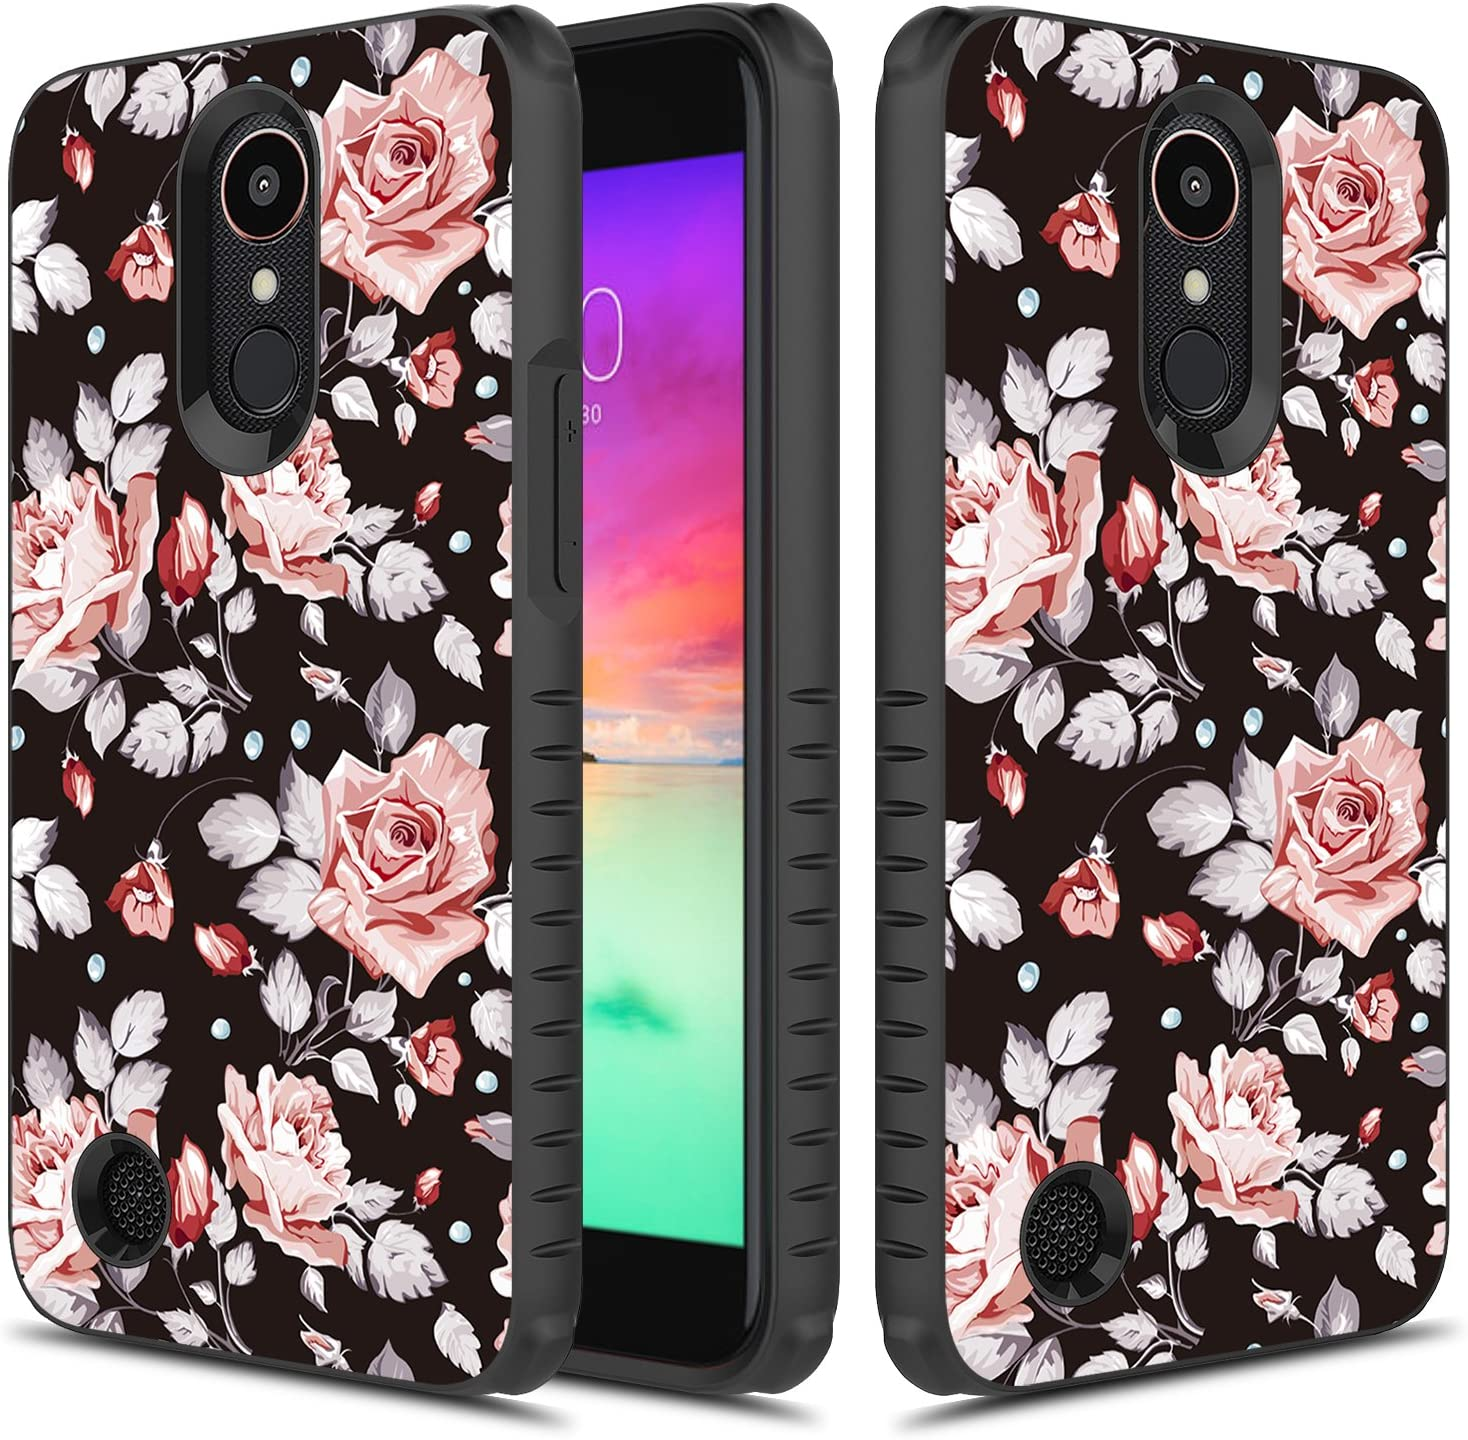 LG K20 Plus Case, TownShop Heavy Duty Dual Layer Shockproof Bumper Case for LG LV5/ LG K20 Plus/LG K10 (2017) - Pink Rose